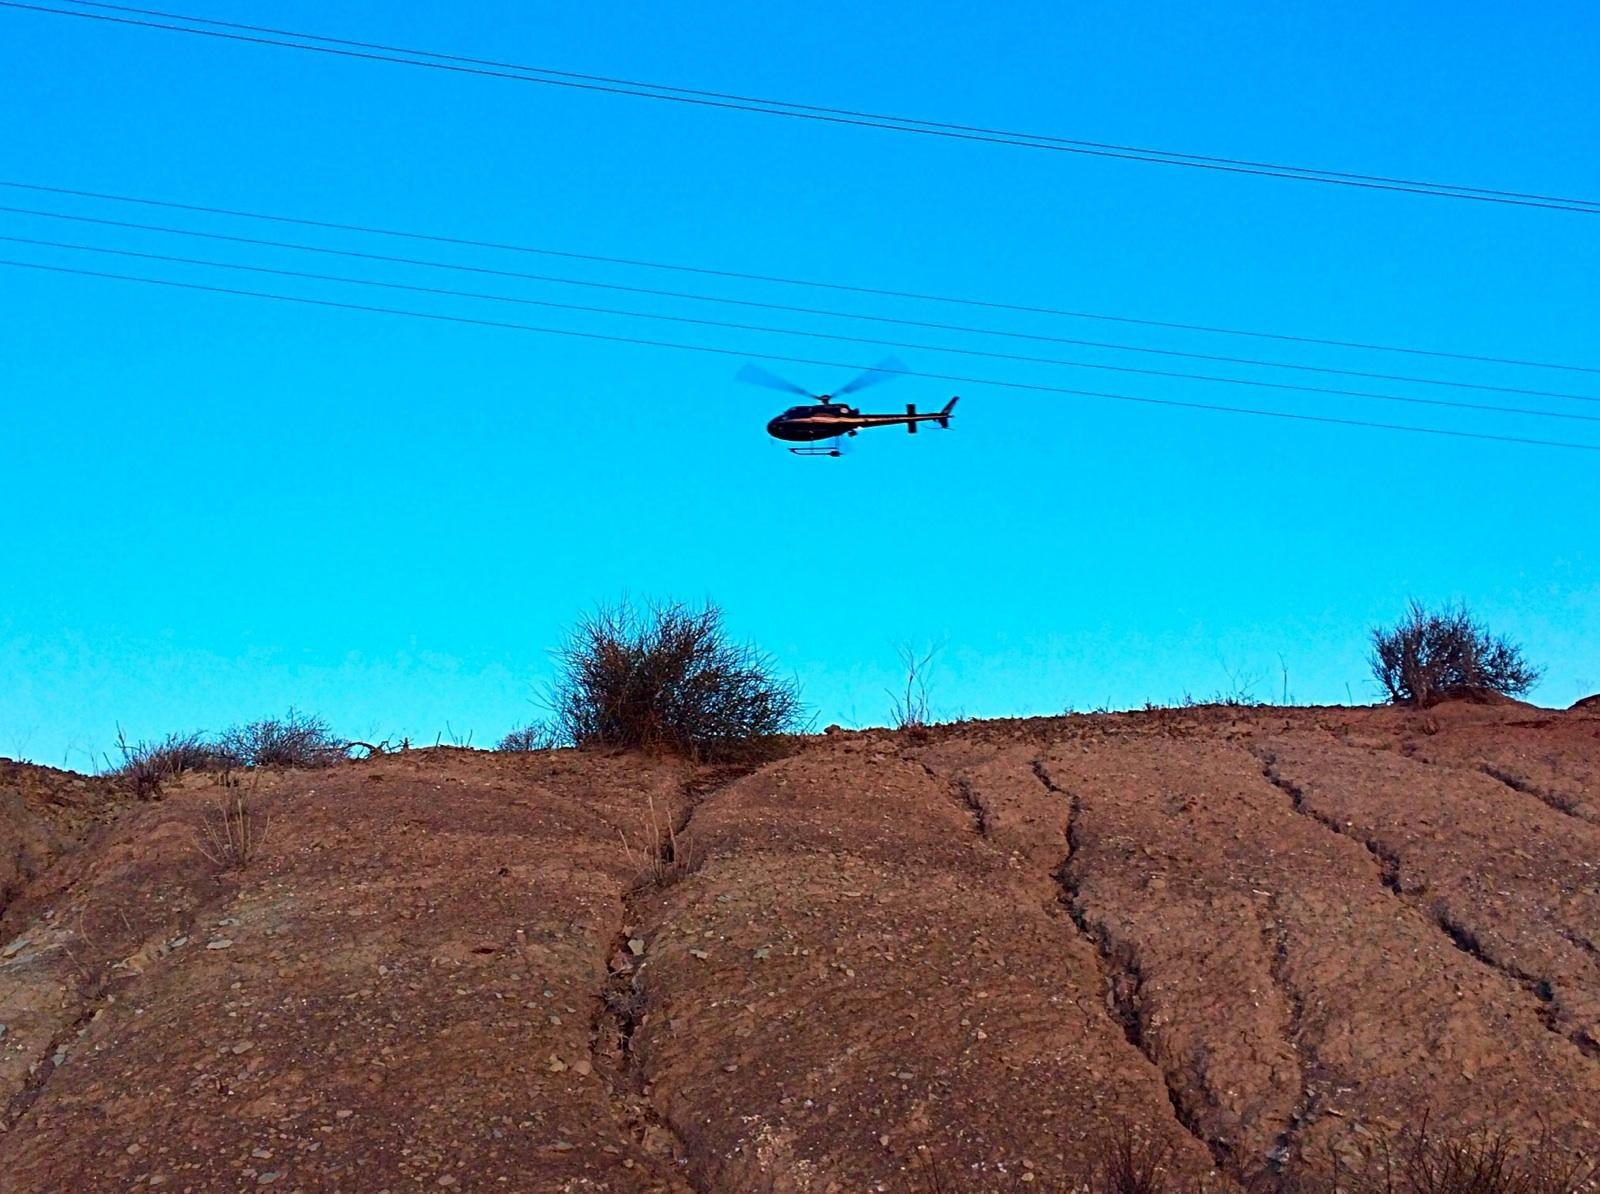 Utah Highway Patrol's Star 8 helicopter aids in the search for four occupants fleeing police on foot near Utah's southern Port of Entry of Interstate 15 southbound, St. George, Utah, Dec. 9, 2014 | Photo by Kimberly Scott, St. George News